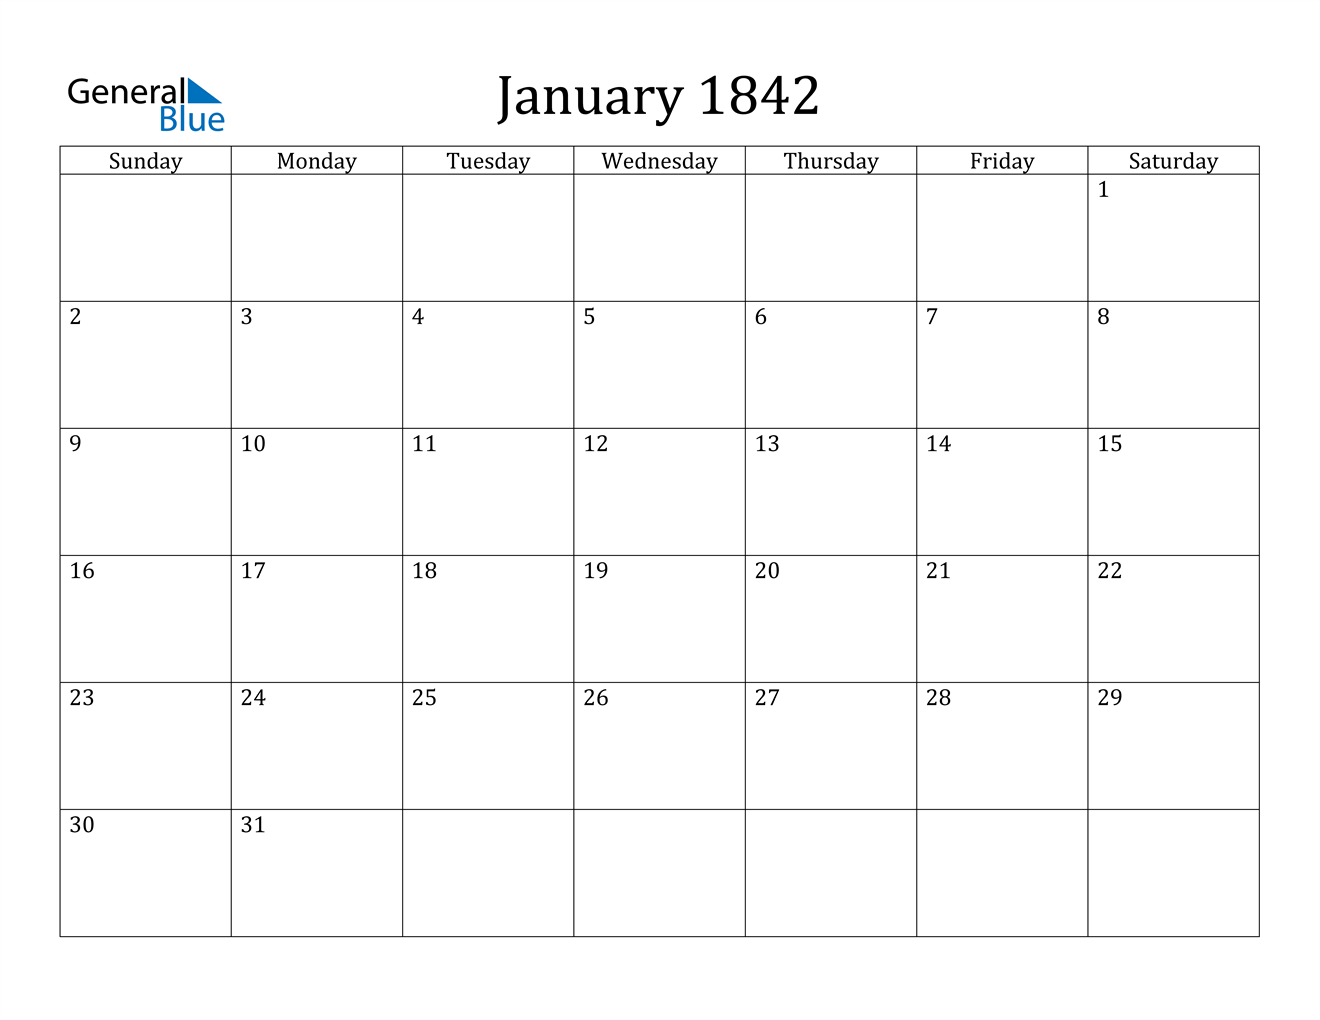 Image of January 1842 Calendar